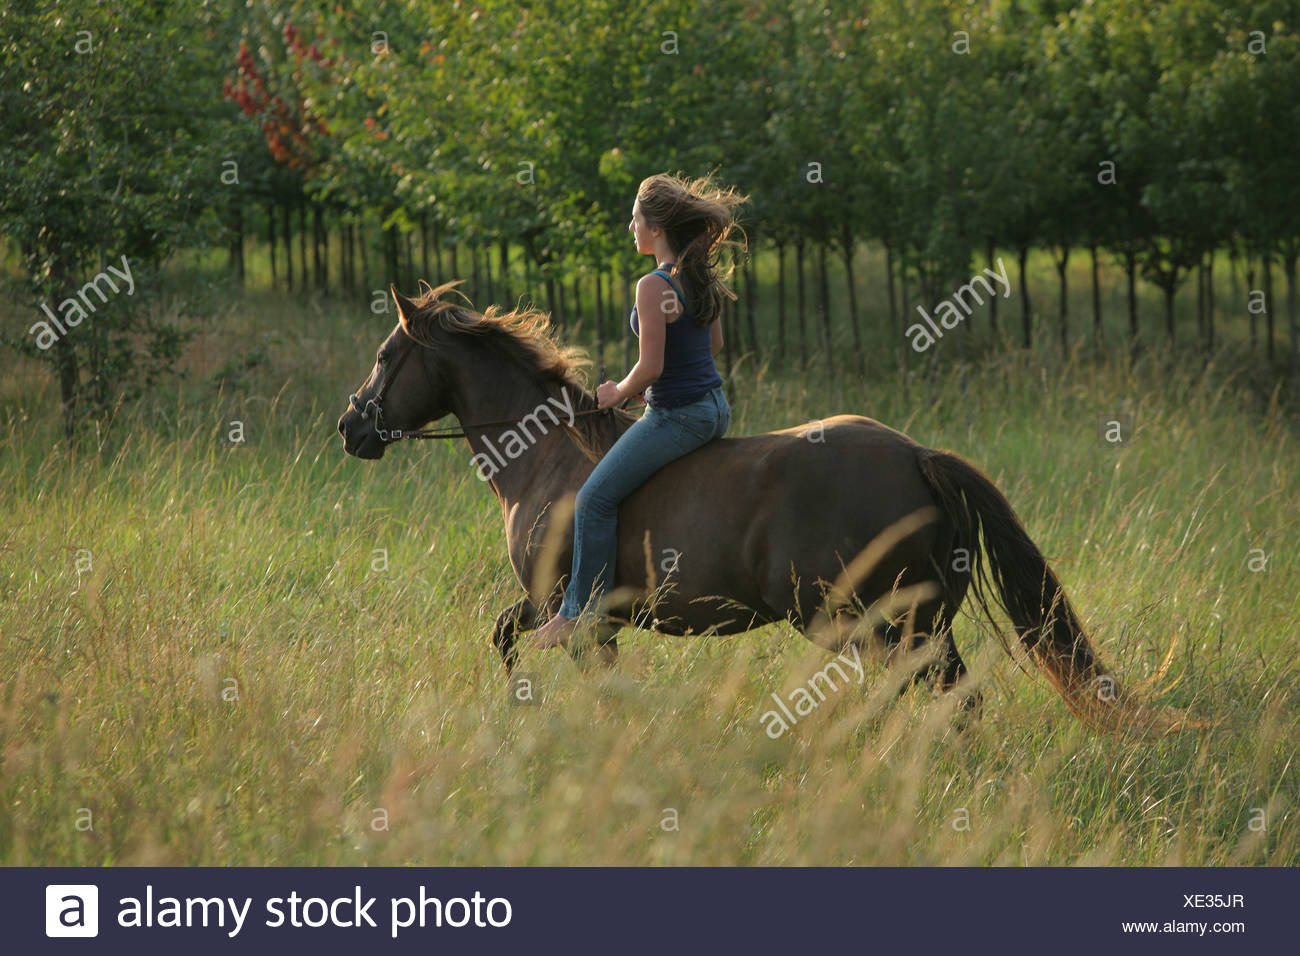 A Teenage Girl Riding A Horse Through A Field; Troutdale Oregon United States Of America - Stock Image